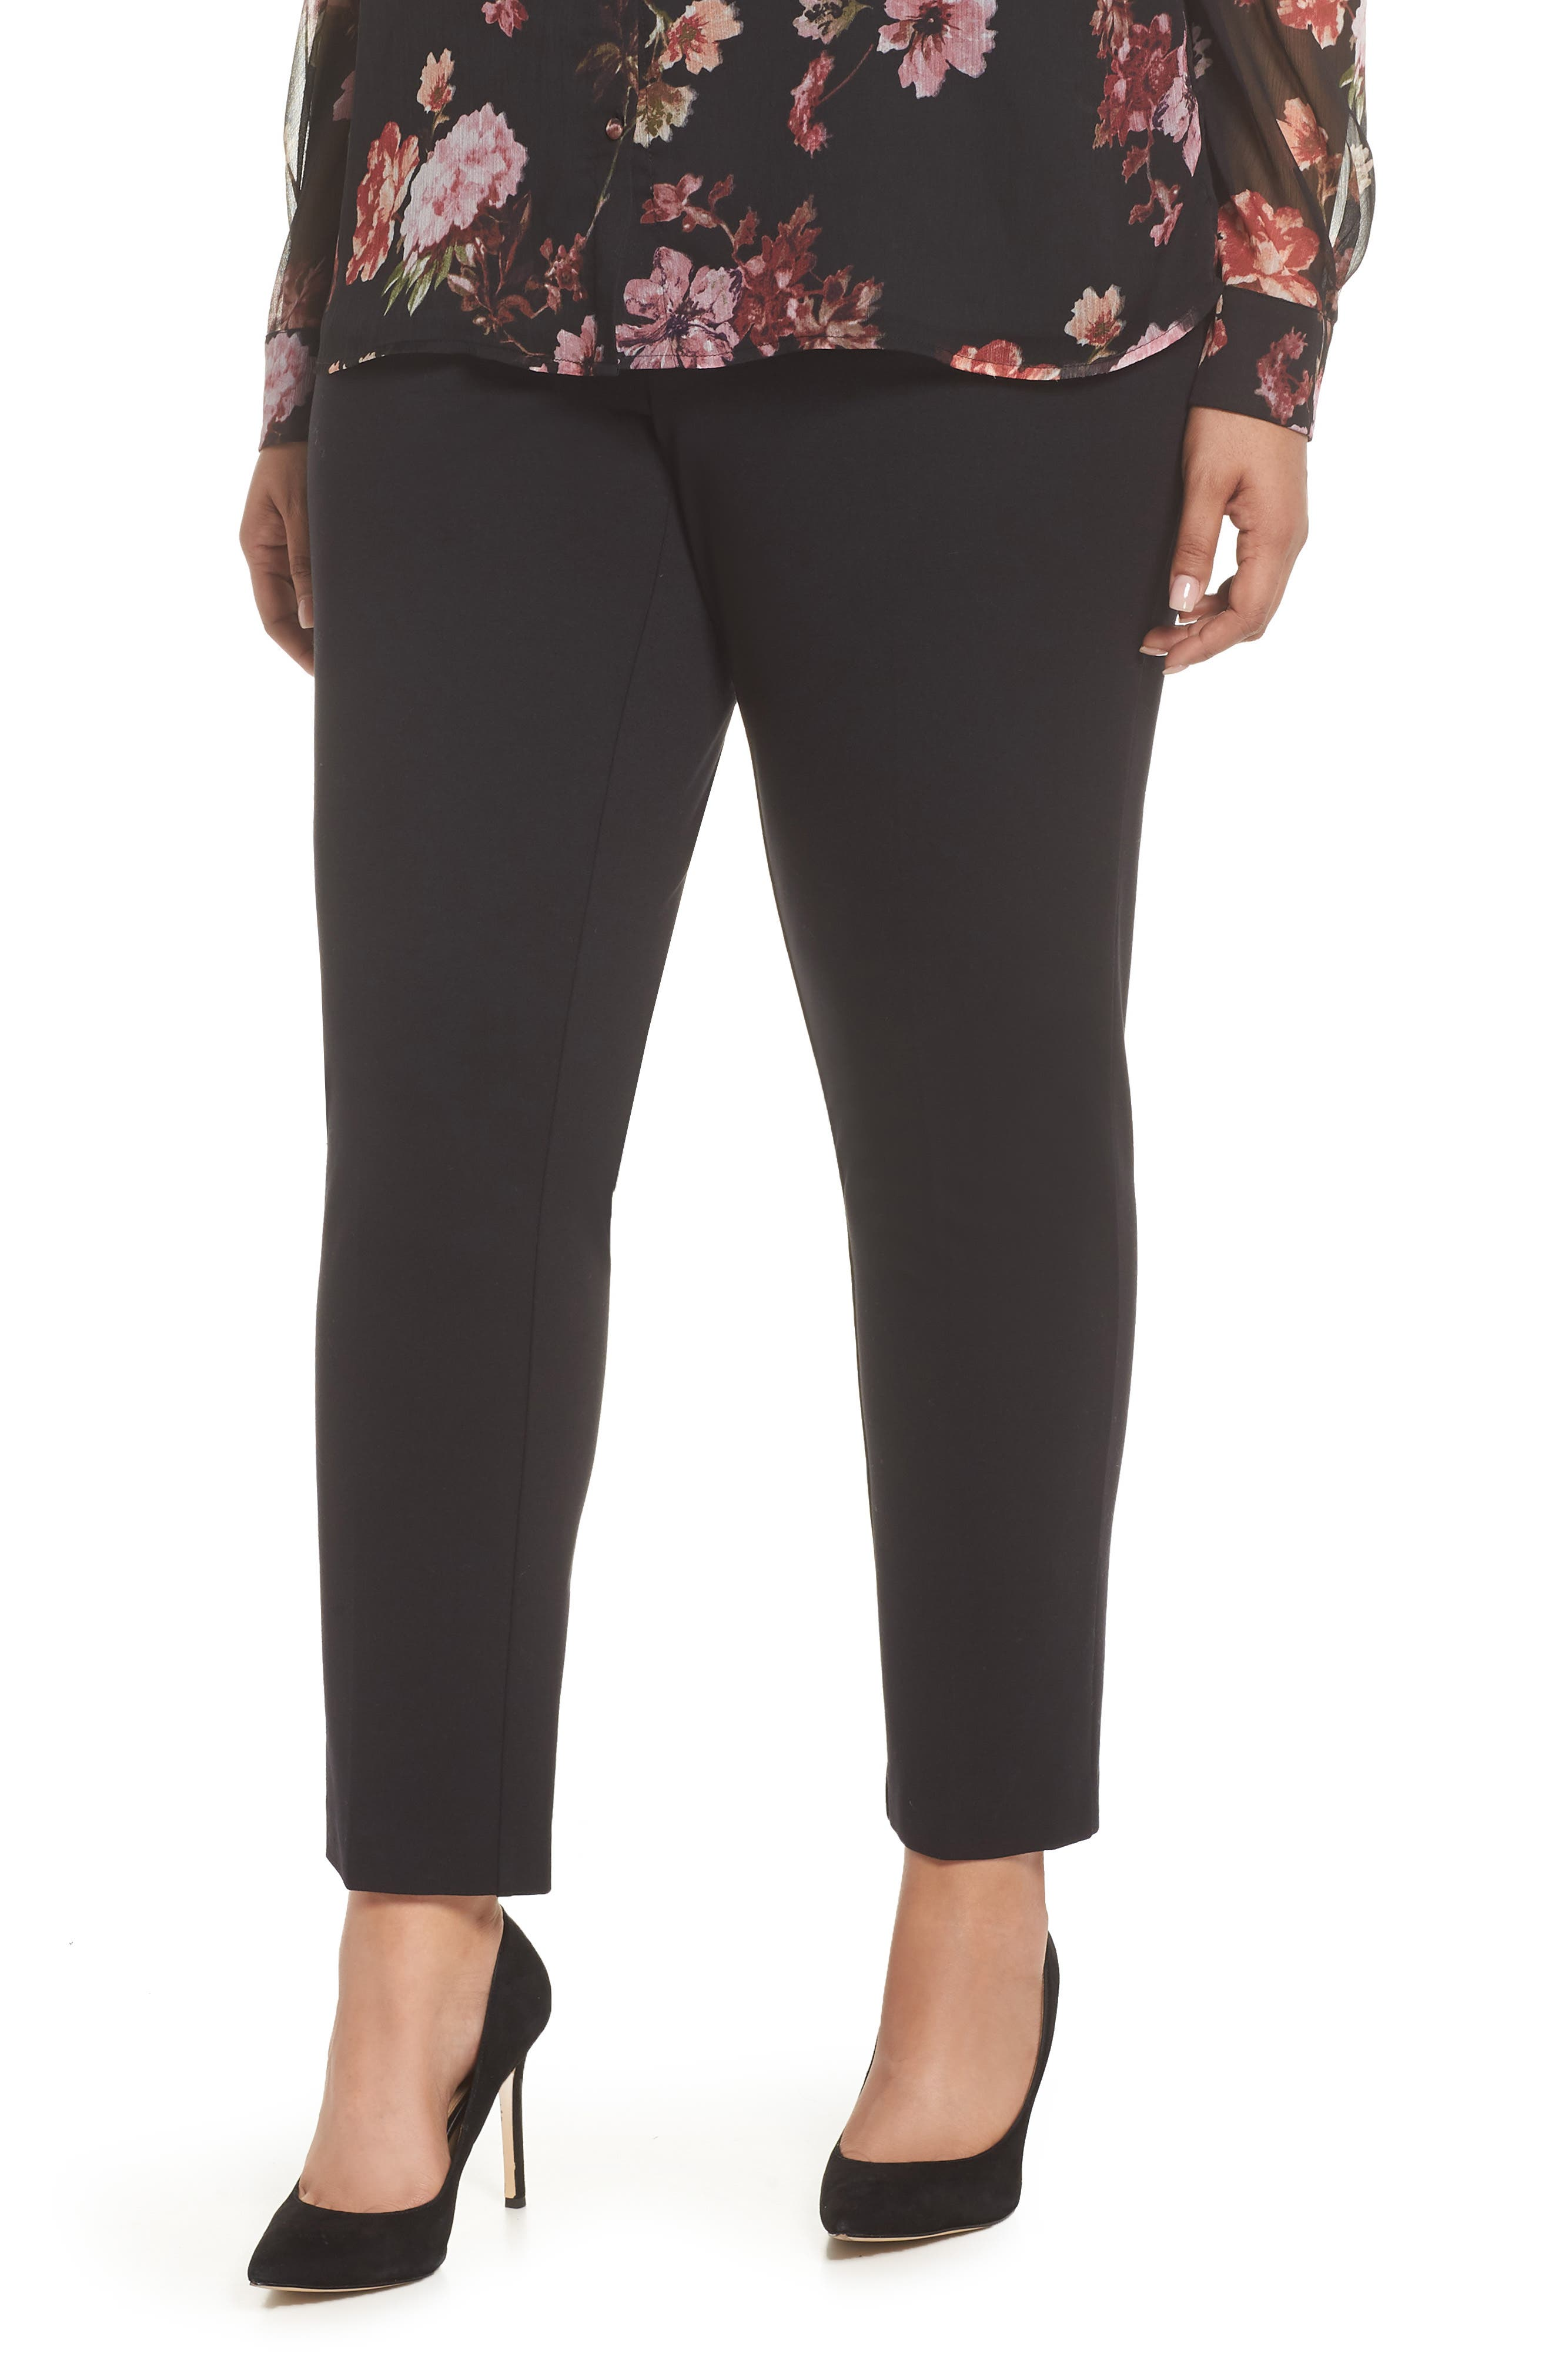 Plus Women's Vince Camuto High Rise Ankle Skinny Ponte Pants